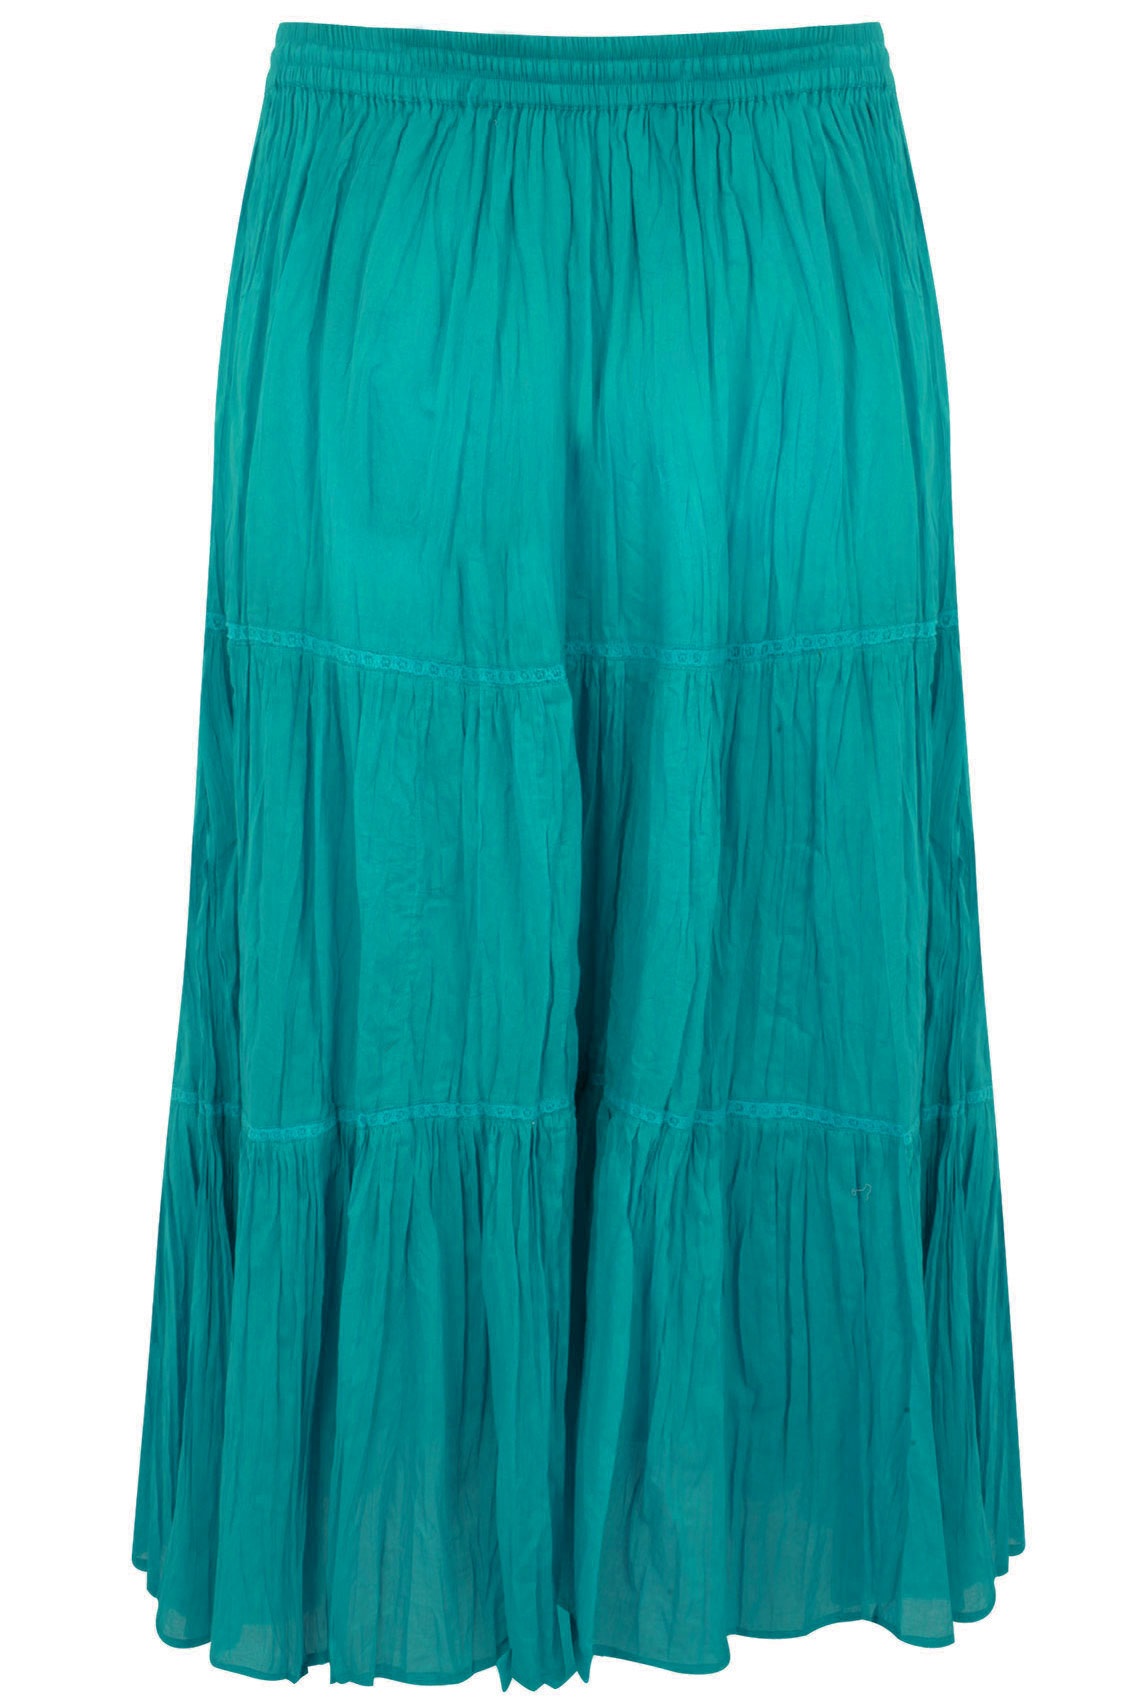 turquoise cotton voile maxi skirt with crochet detail plus